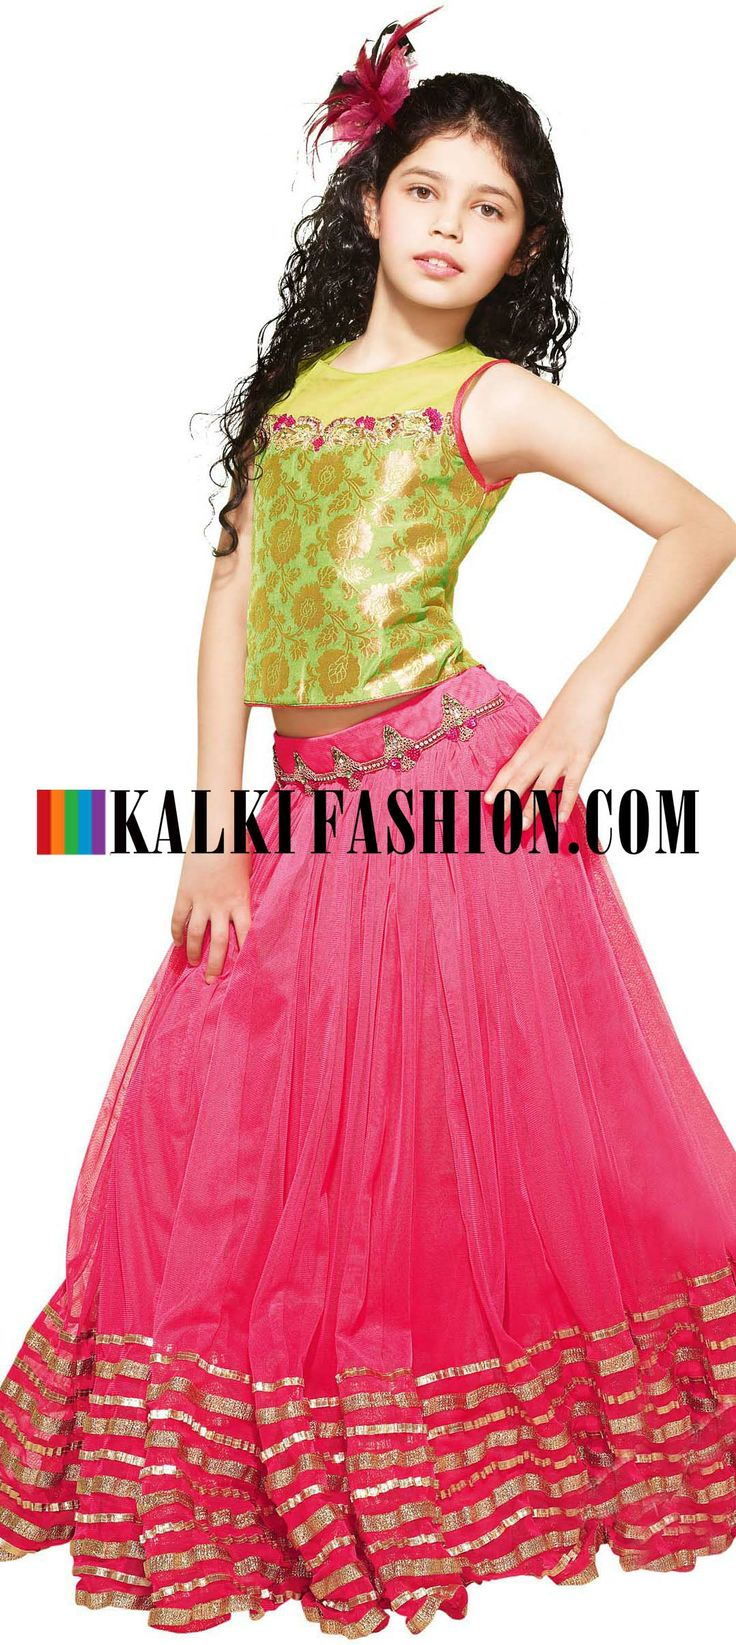 Buy Online from the link below. We ship worldwide (Free Shipping over US$100) http://www.kalkifashion.com/lehenga-choli-in-pink-and-green-embellished-in-stone.html